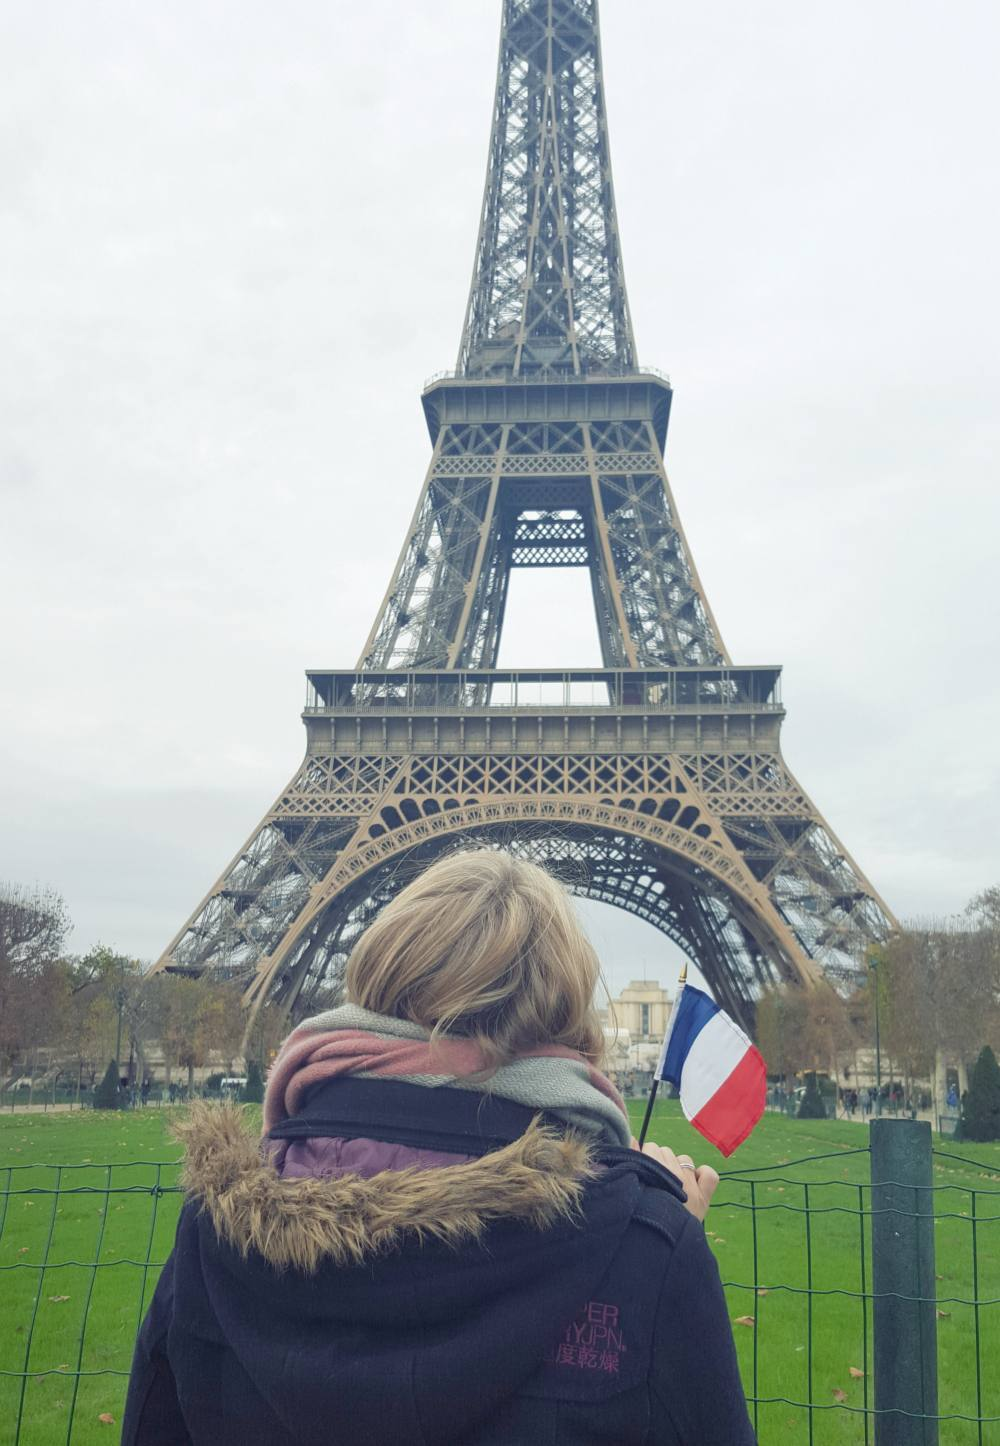 Paris (during the Terror Attacks) - 2015 - My year in review